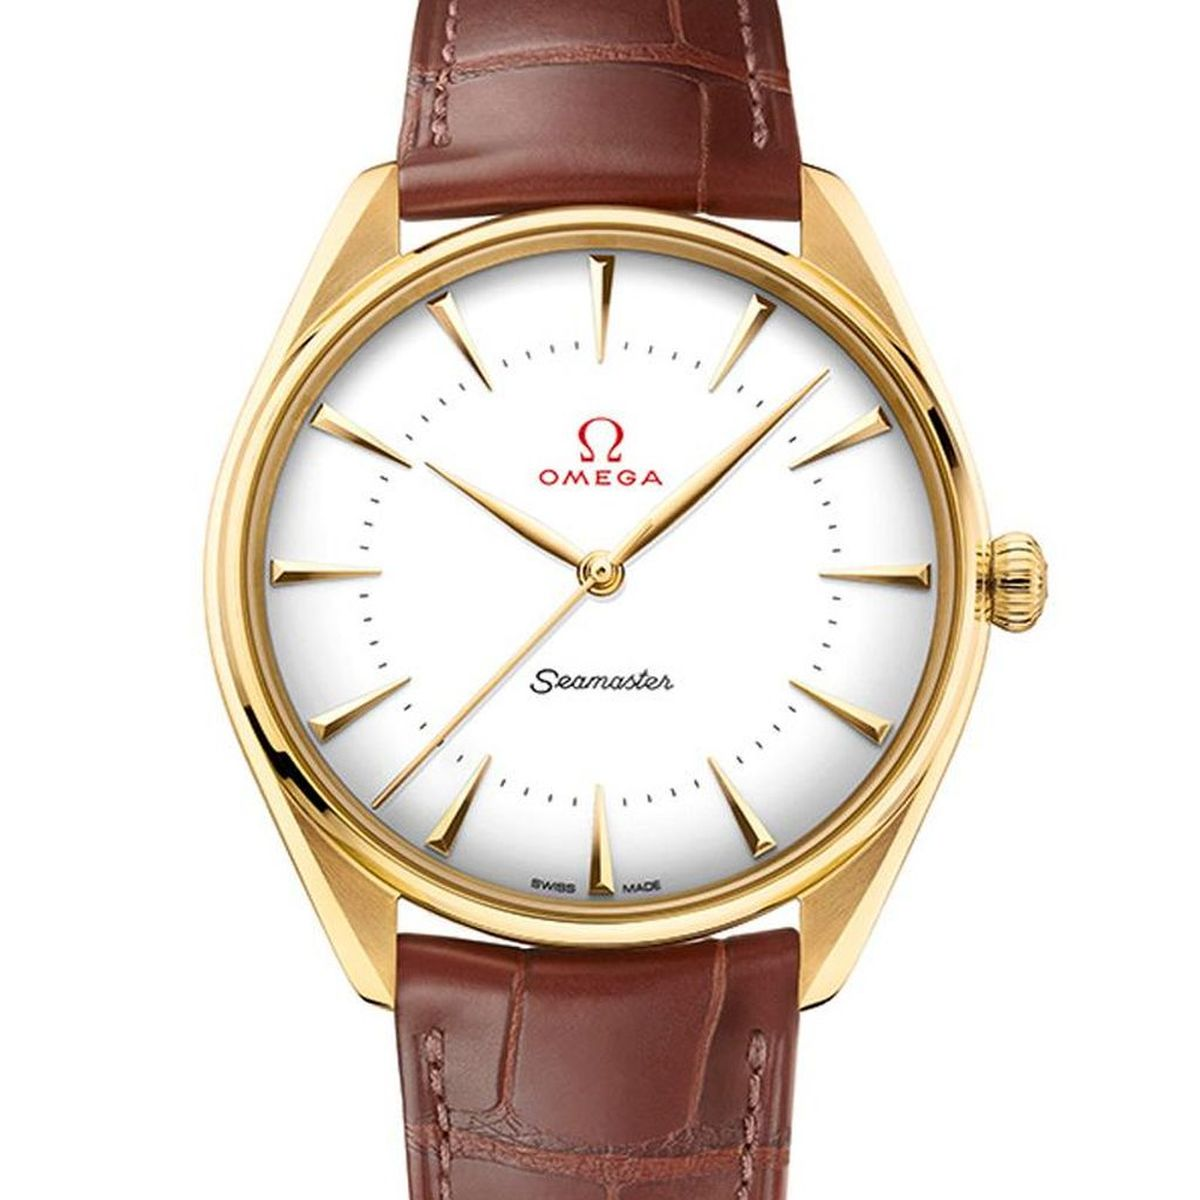 Omega Seamaster Olympic Games Watch Collection For 2018